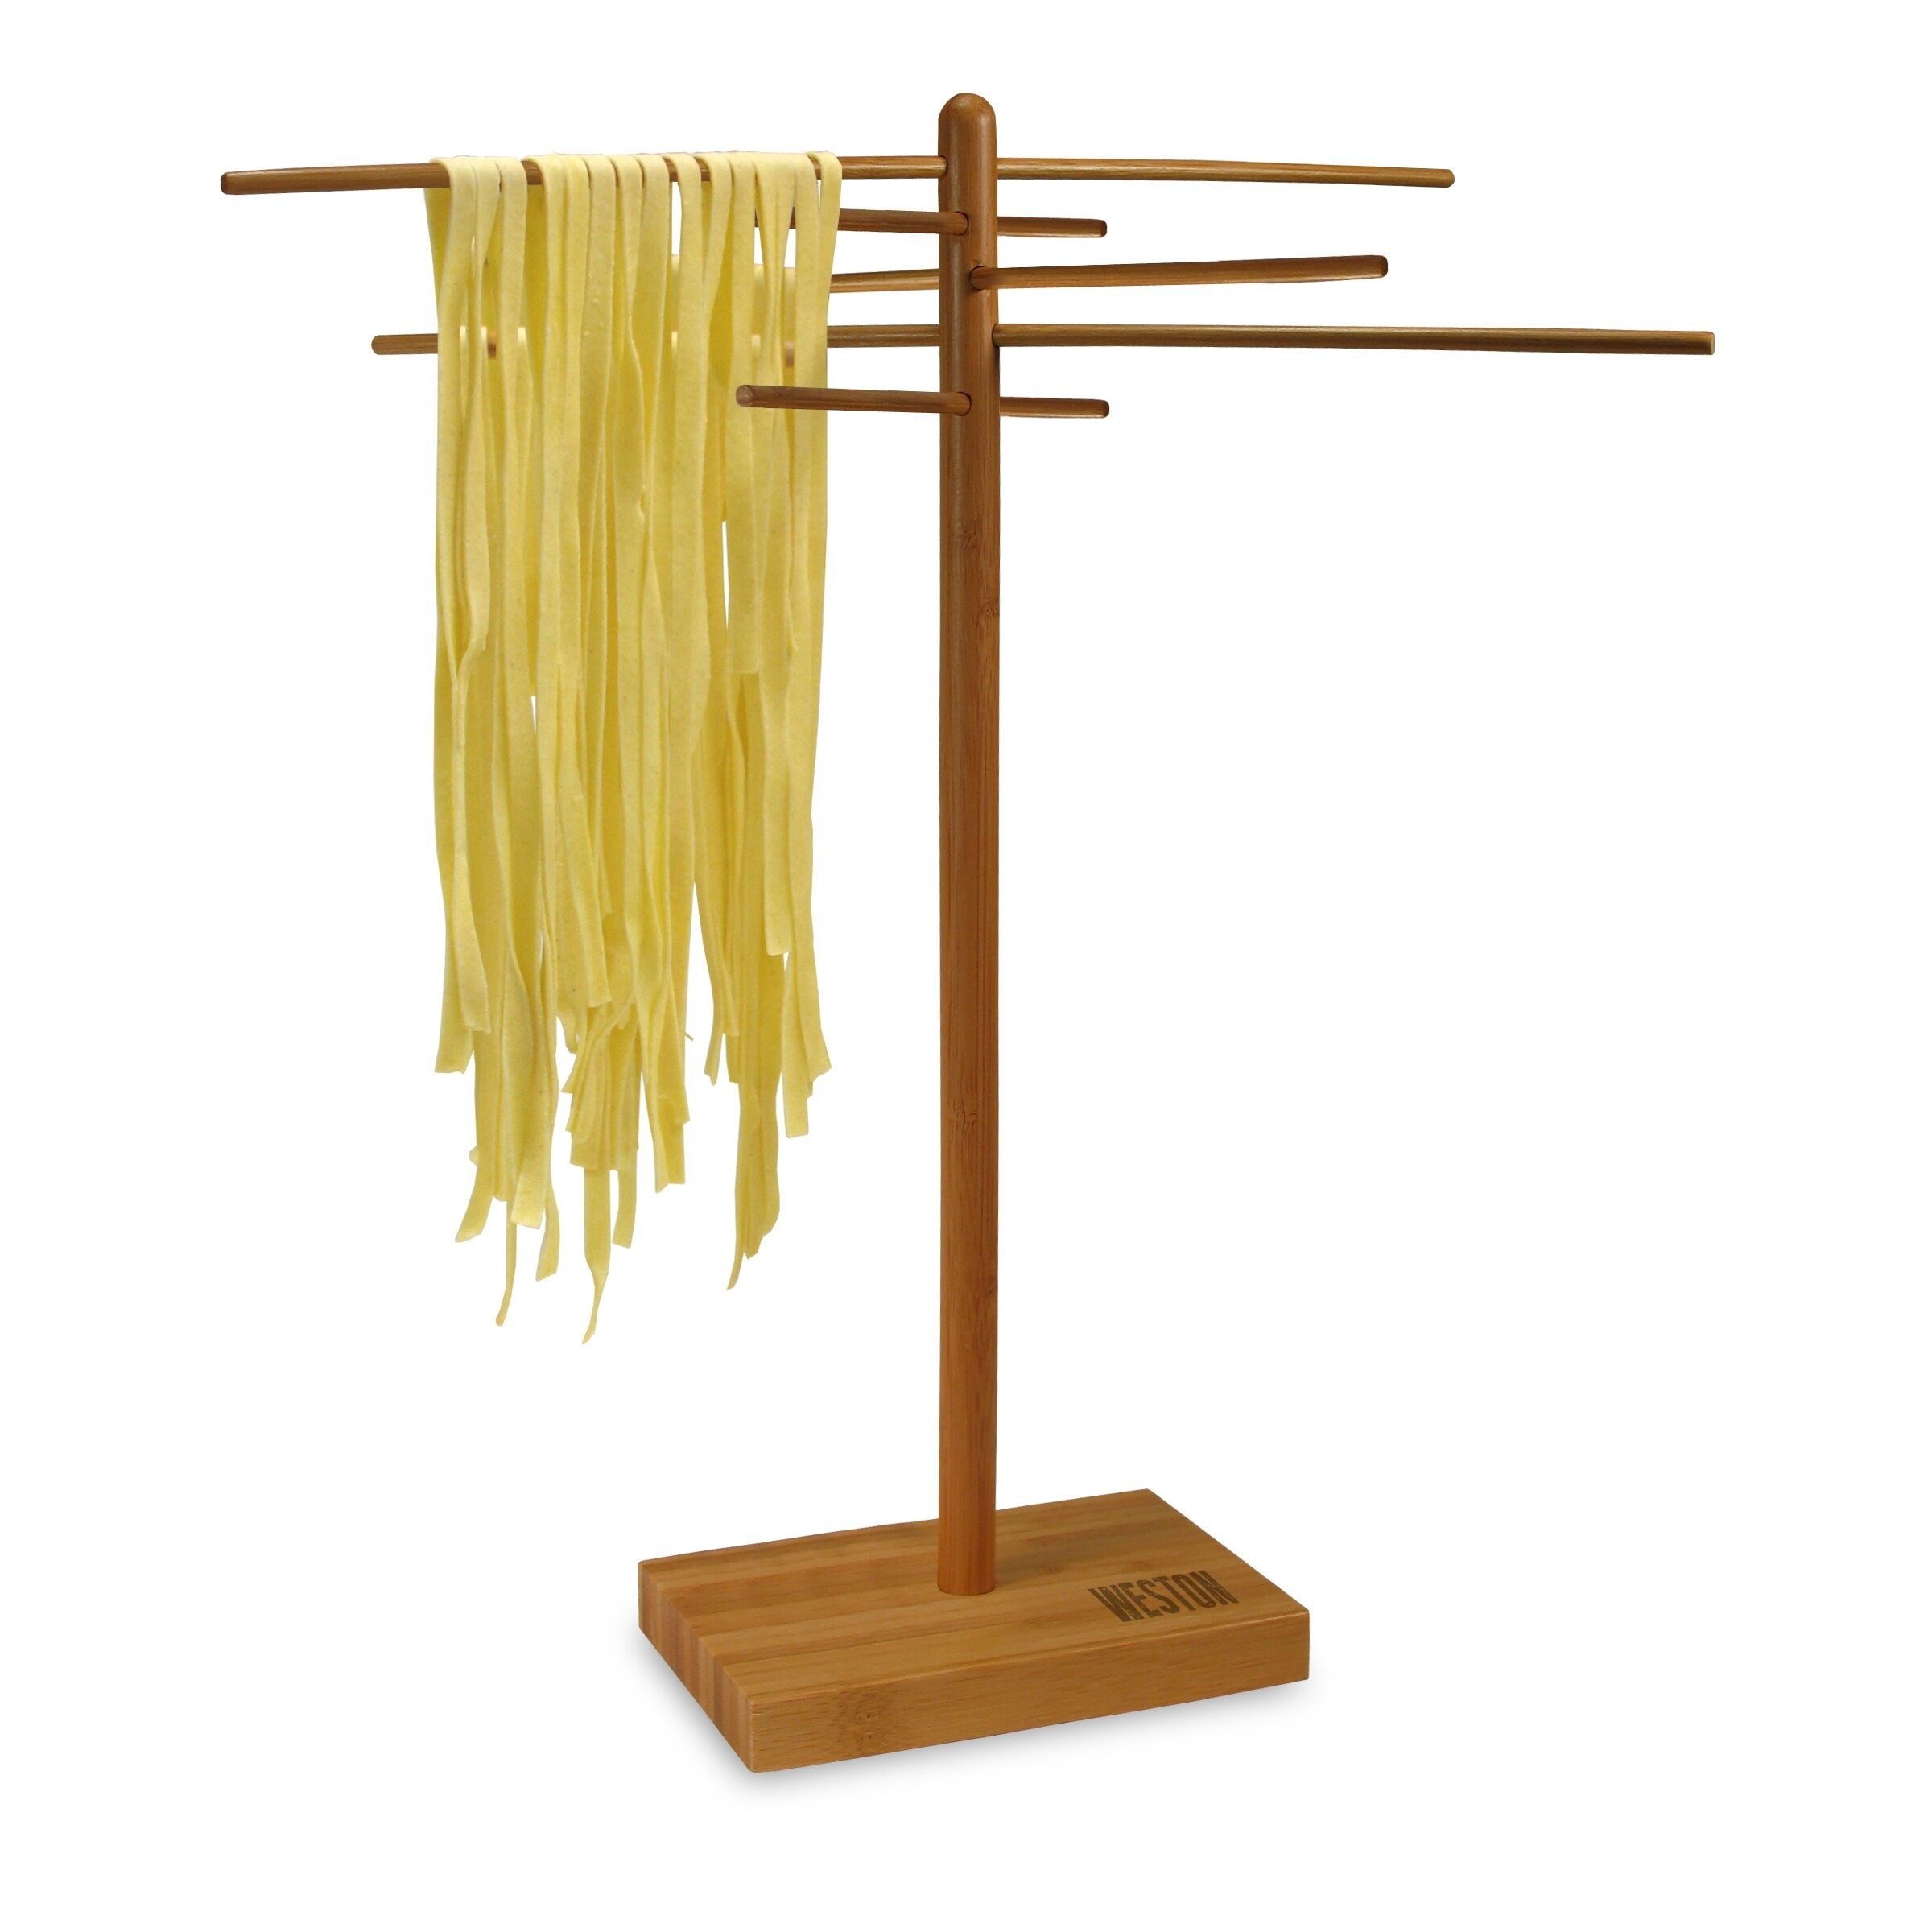 Fresh pasta hanging to dry on a bamboo rack